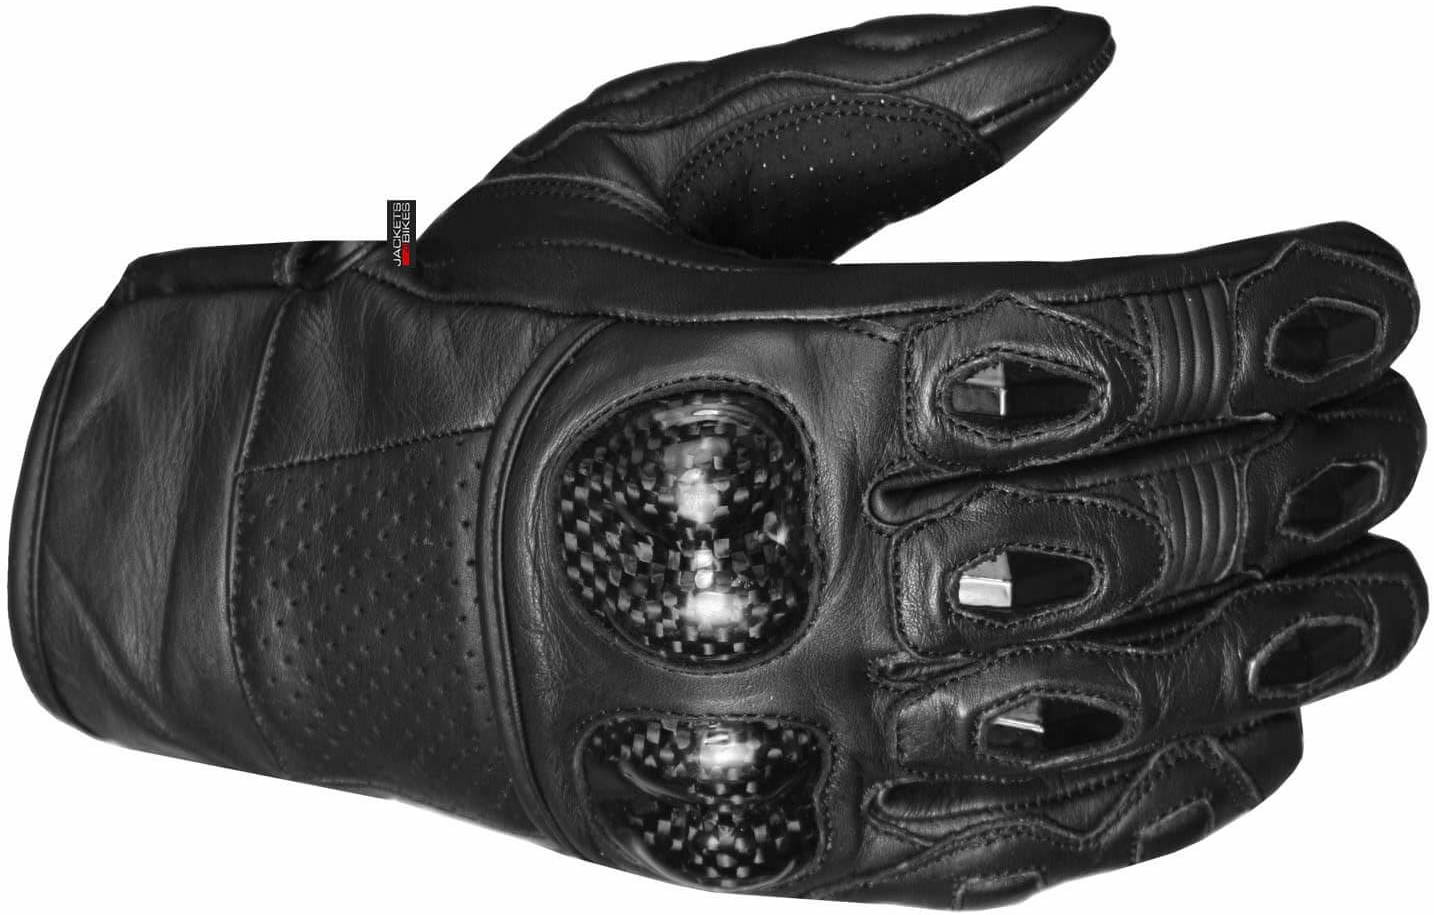 Jackets 4 Bikes Men's Leather Gloves